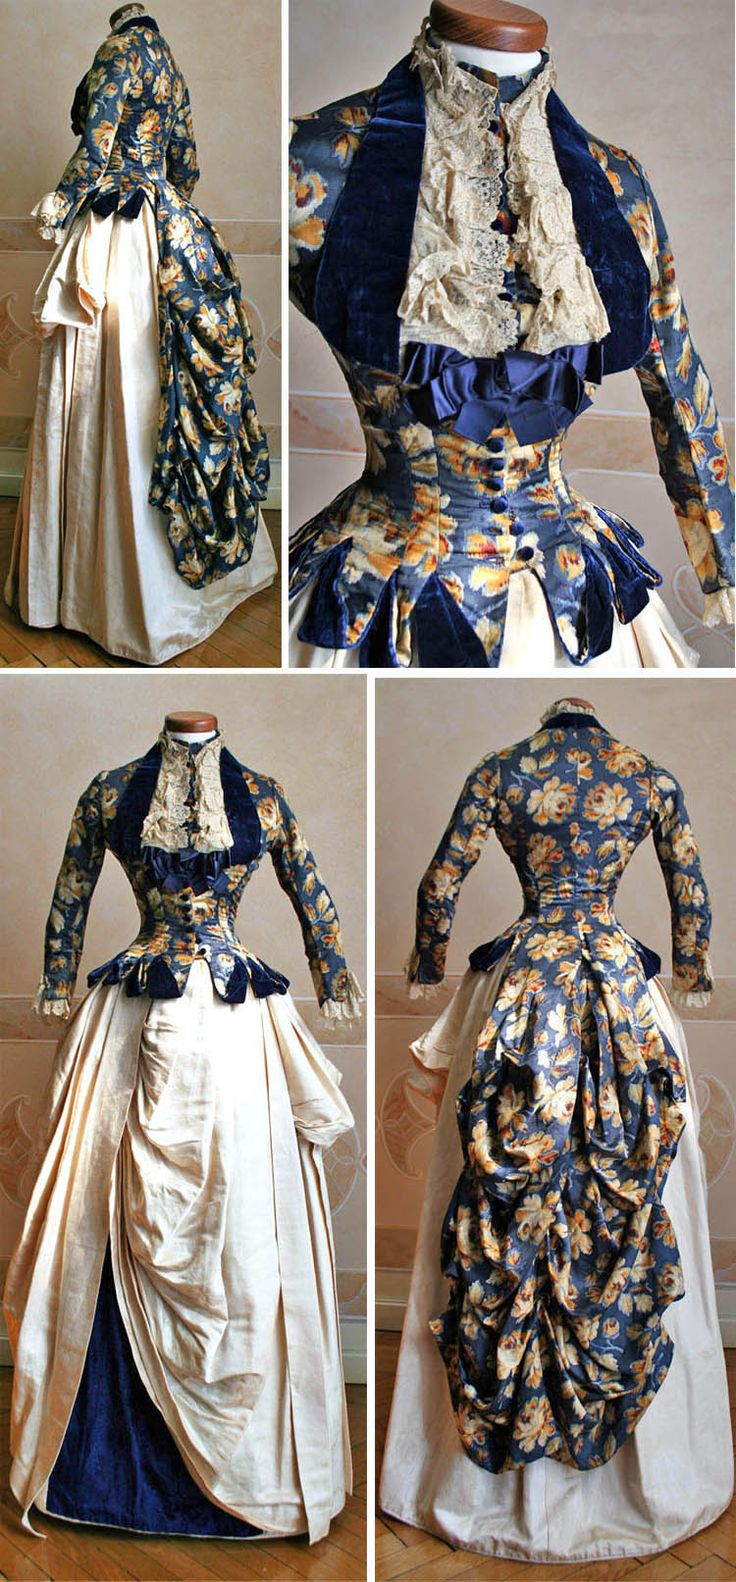 Two-piece dress (skirt and bodice), 1886. Silk crêpe de chine bodice with blue velvet trim. Skirt in ivory silk with blue velvet inlay. Abiti Antichi